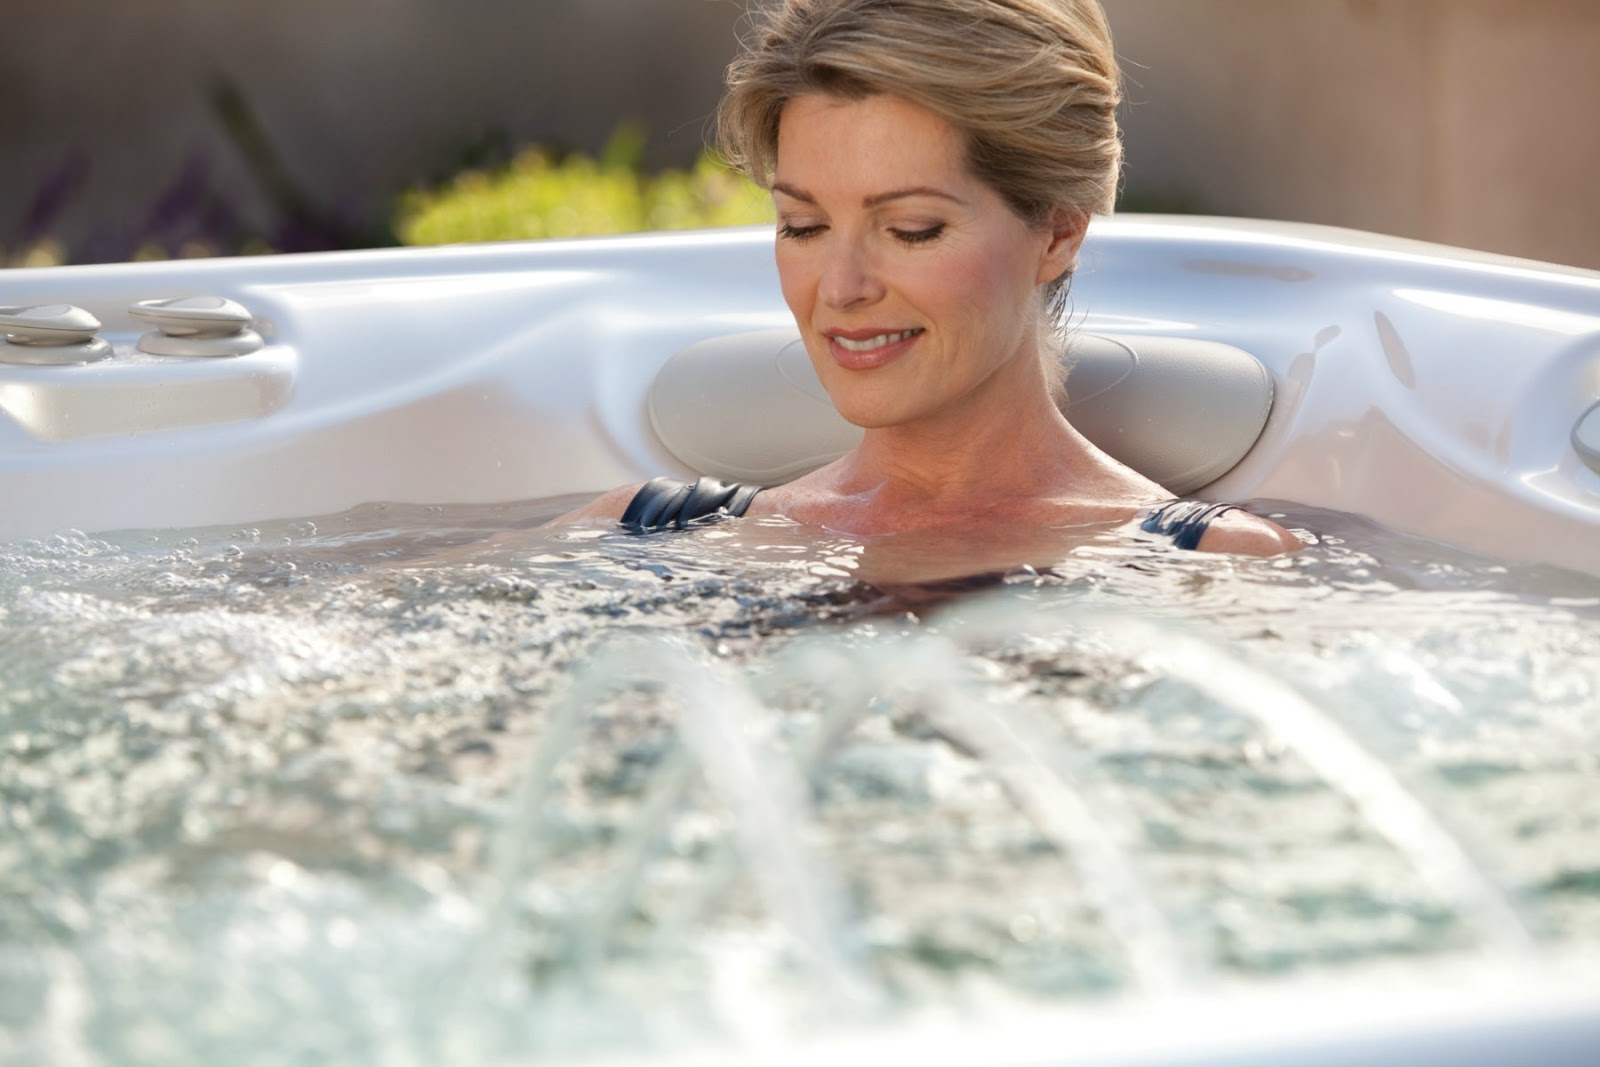 A woman relaxed and stress free in a hot tub